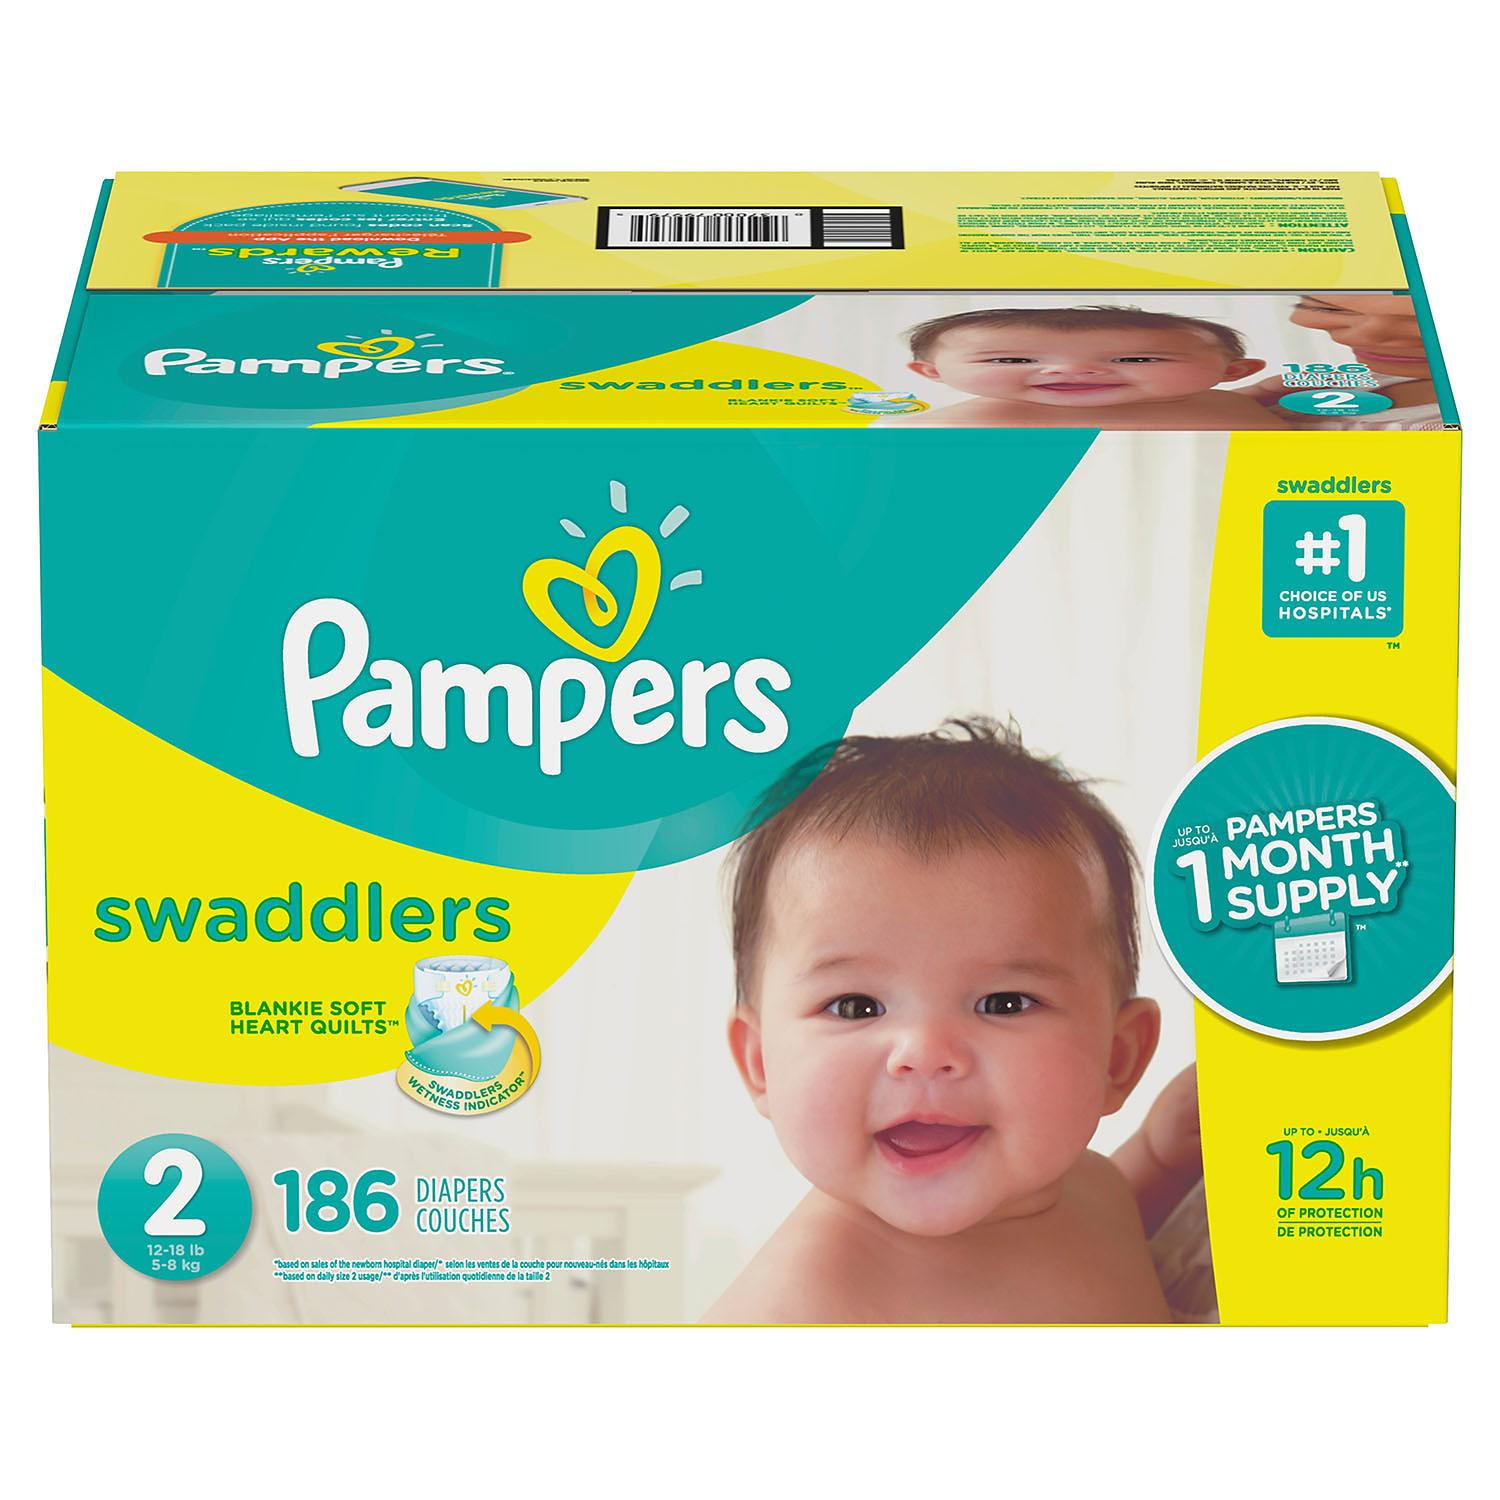 Item By Pampers Swaddlers Diapers #1 choice of hospitals, nurses and parents. size: 2 -186 ct. (12-18 lb.) by Brand By Diapers